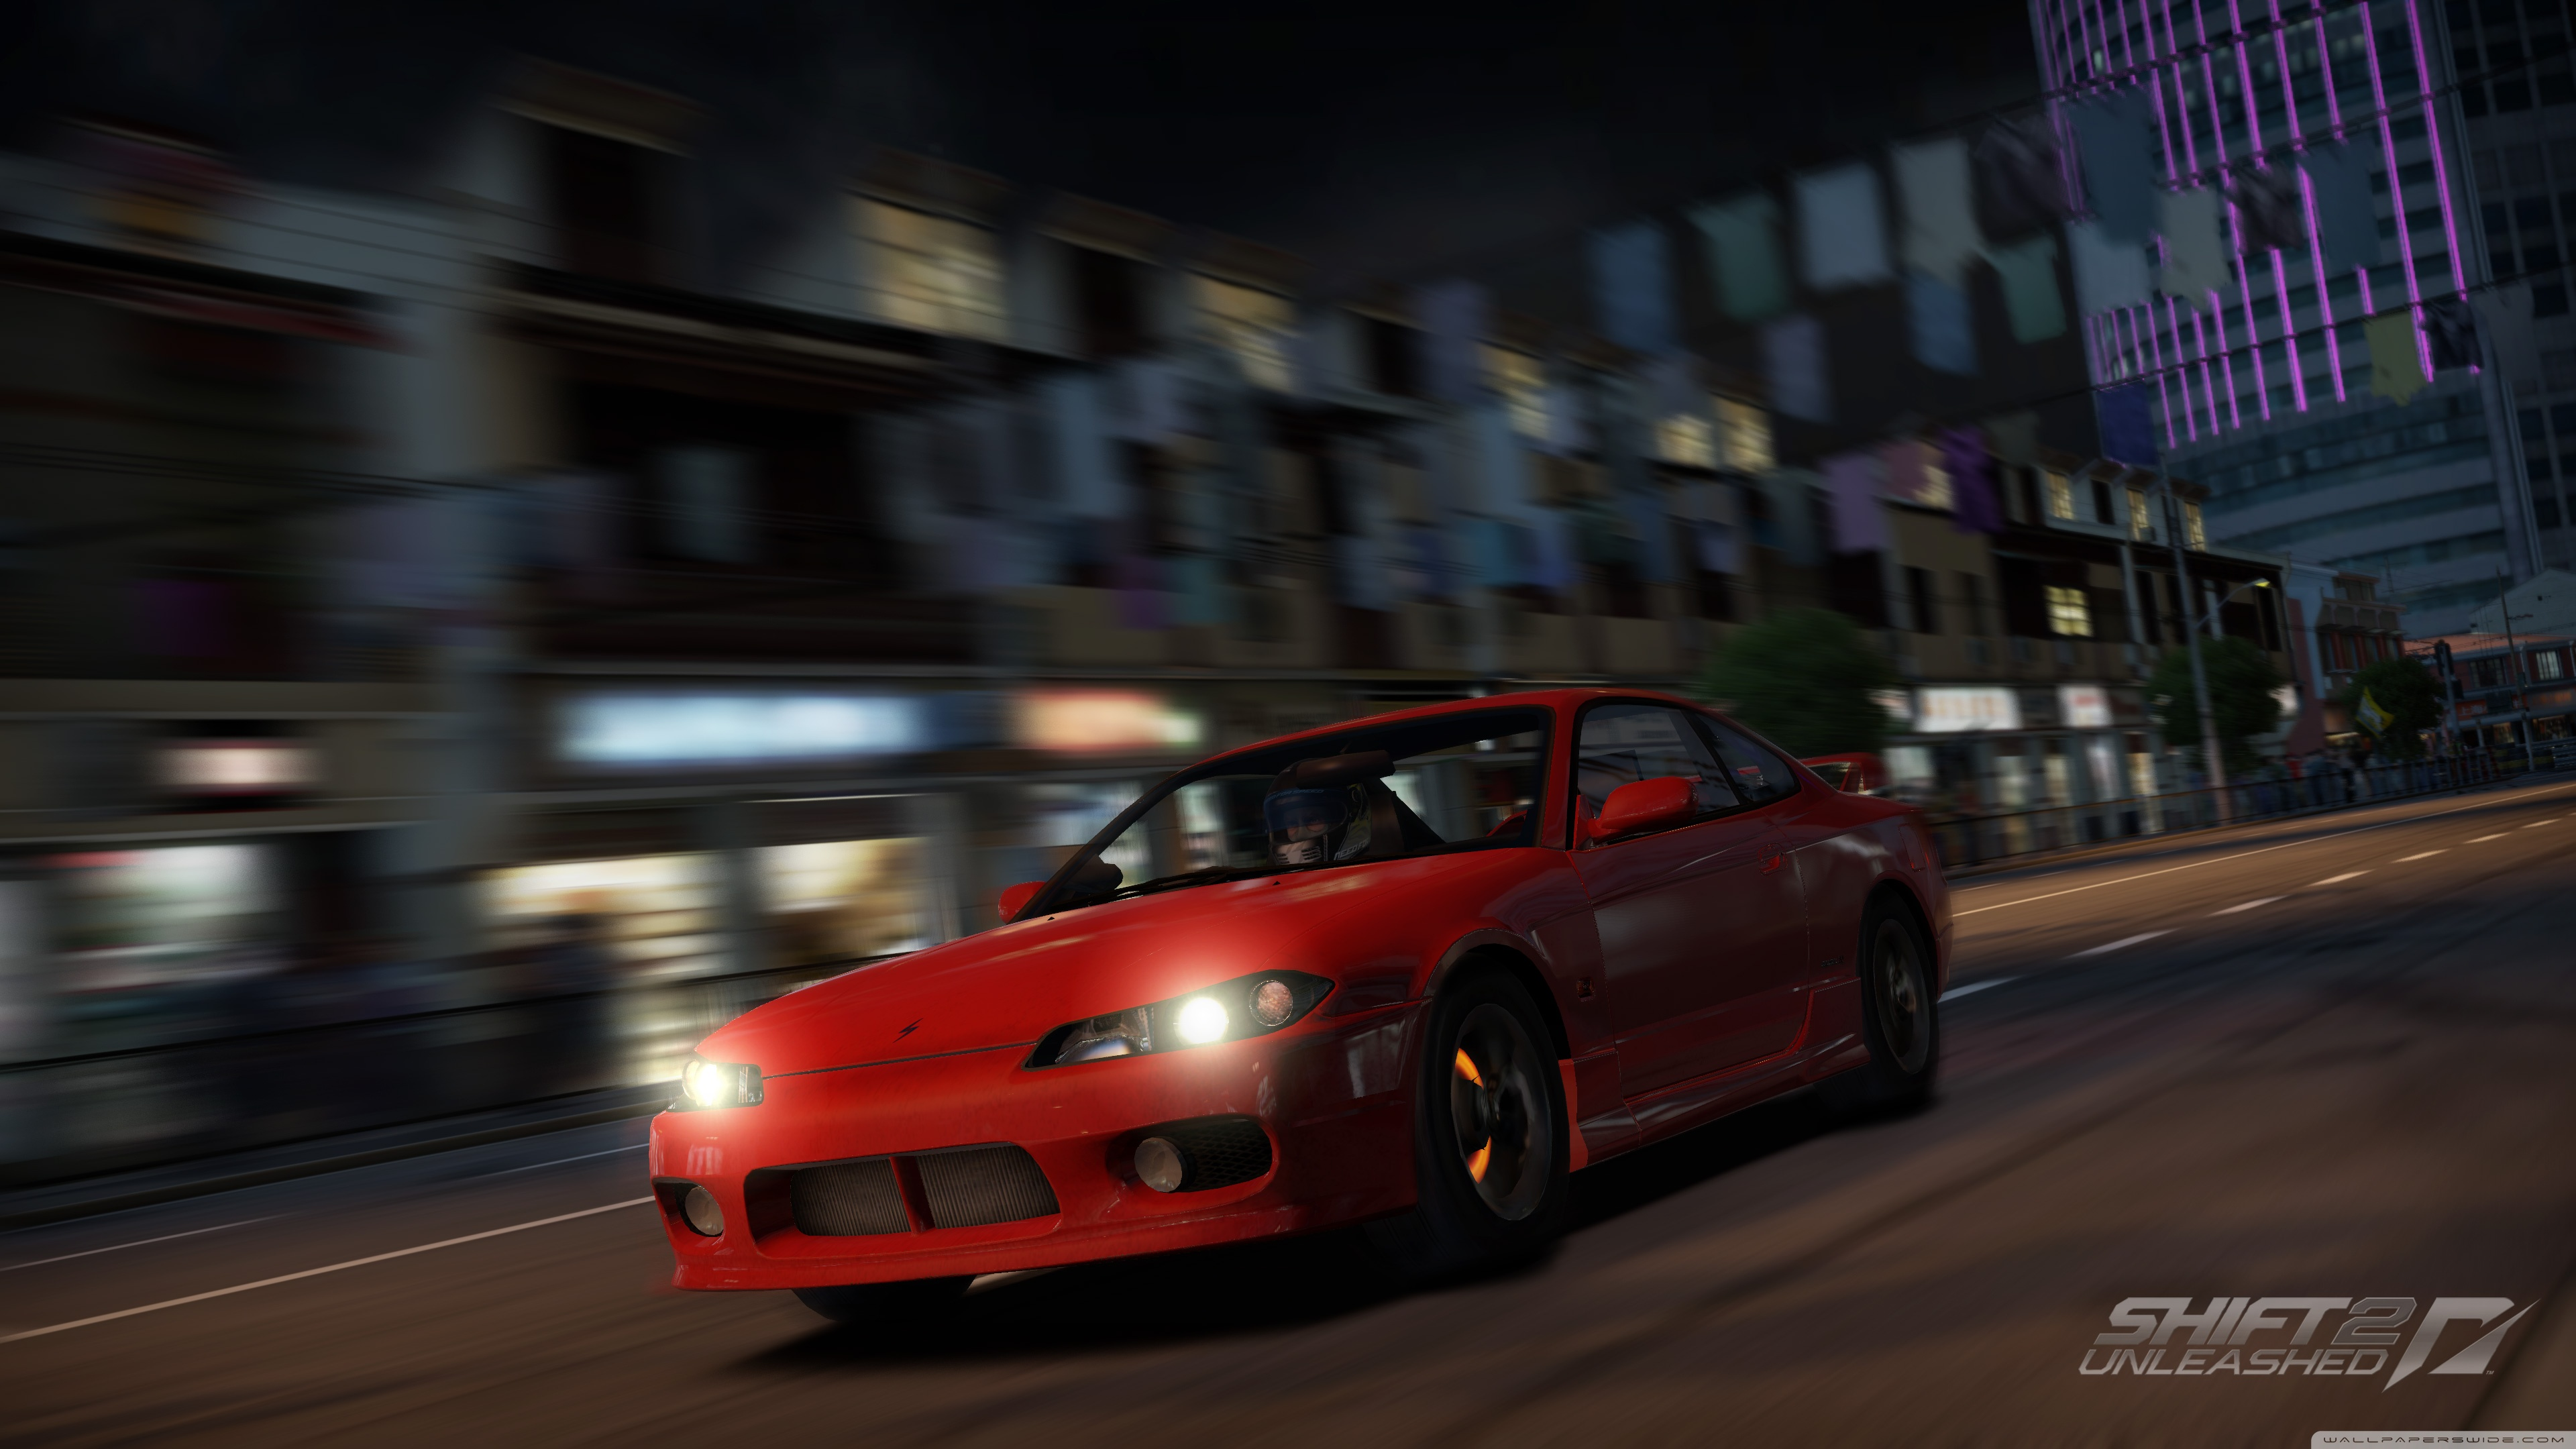 Nfs Shift 2 Unleashed Hd Wallpapers I Have A Pc